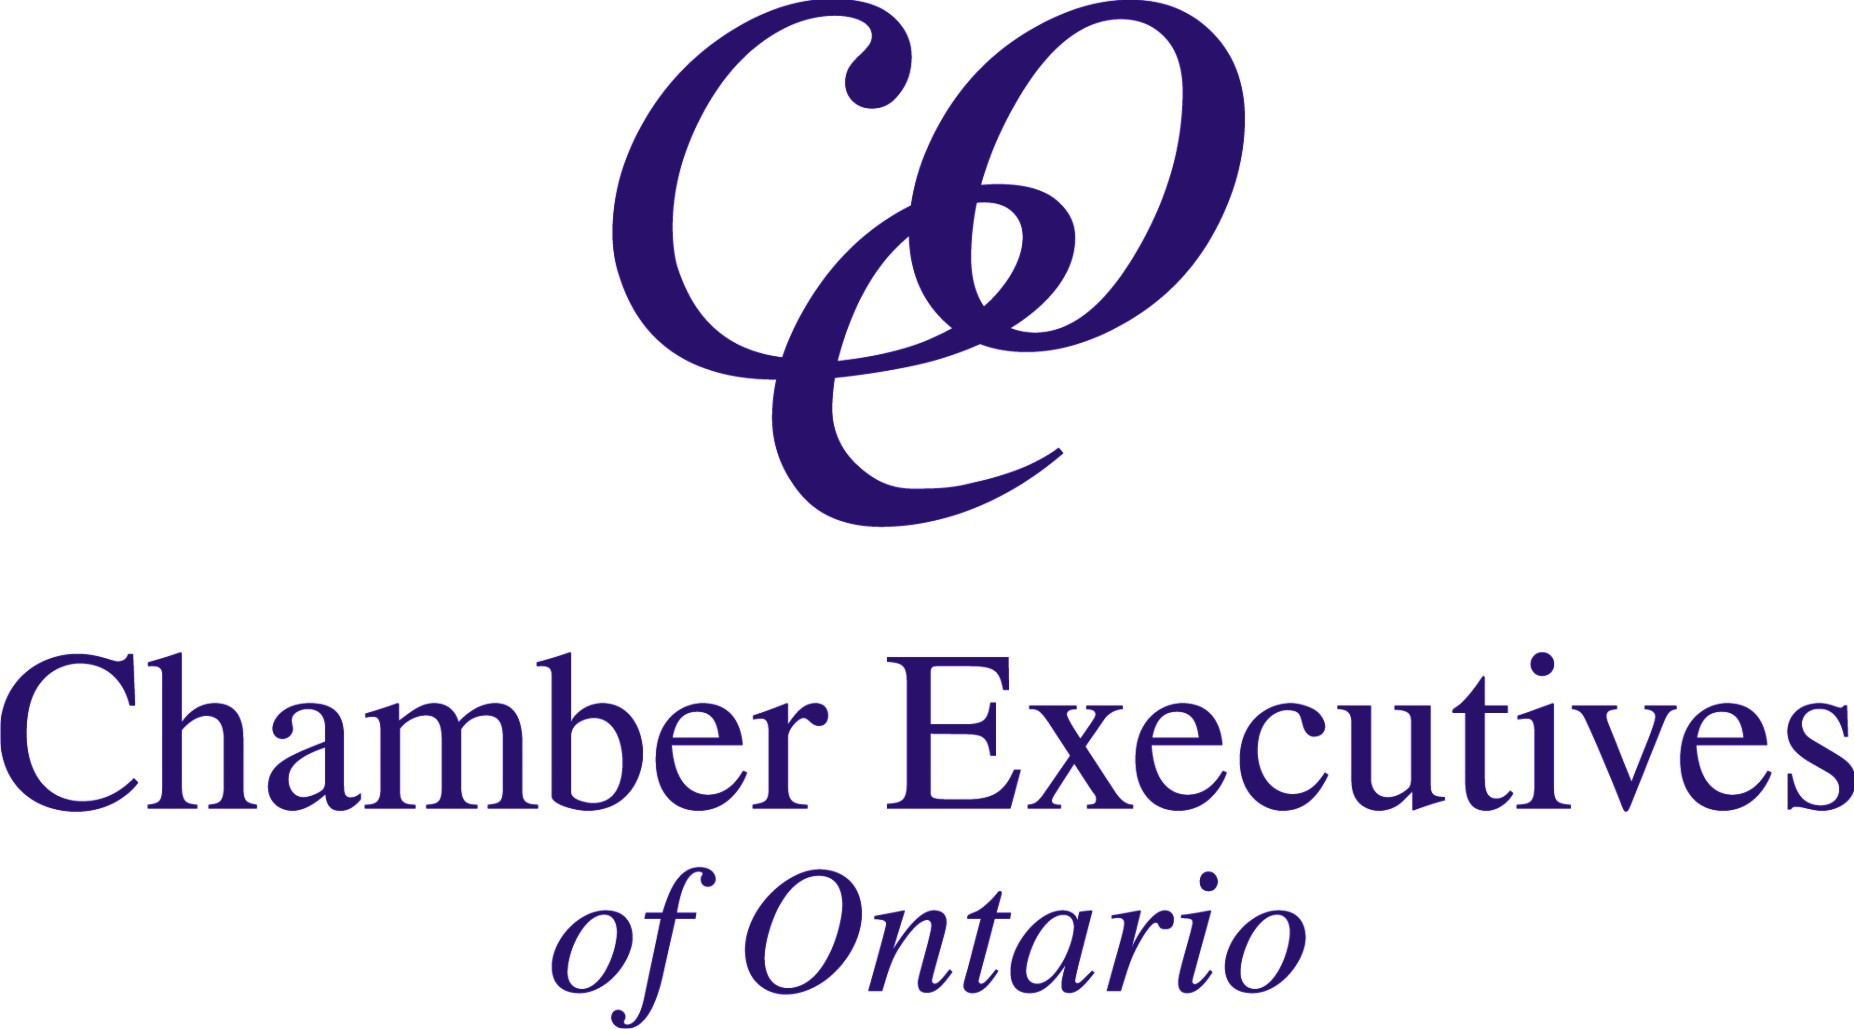 Chamber Executives of Ontario